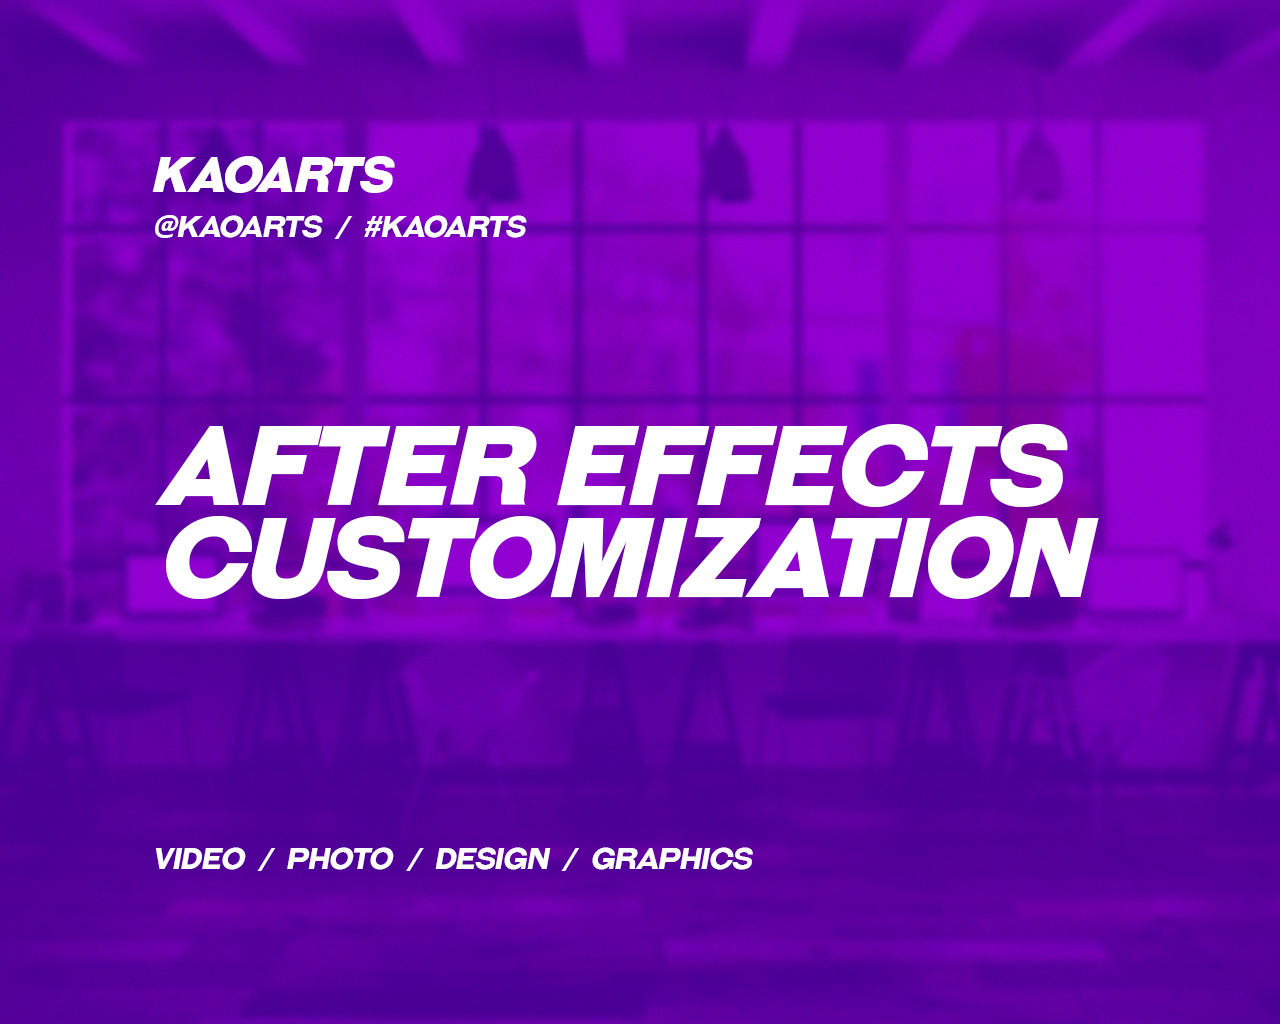 Professional After Effects Customization by Kaoarts - 95835